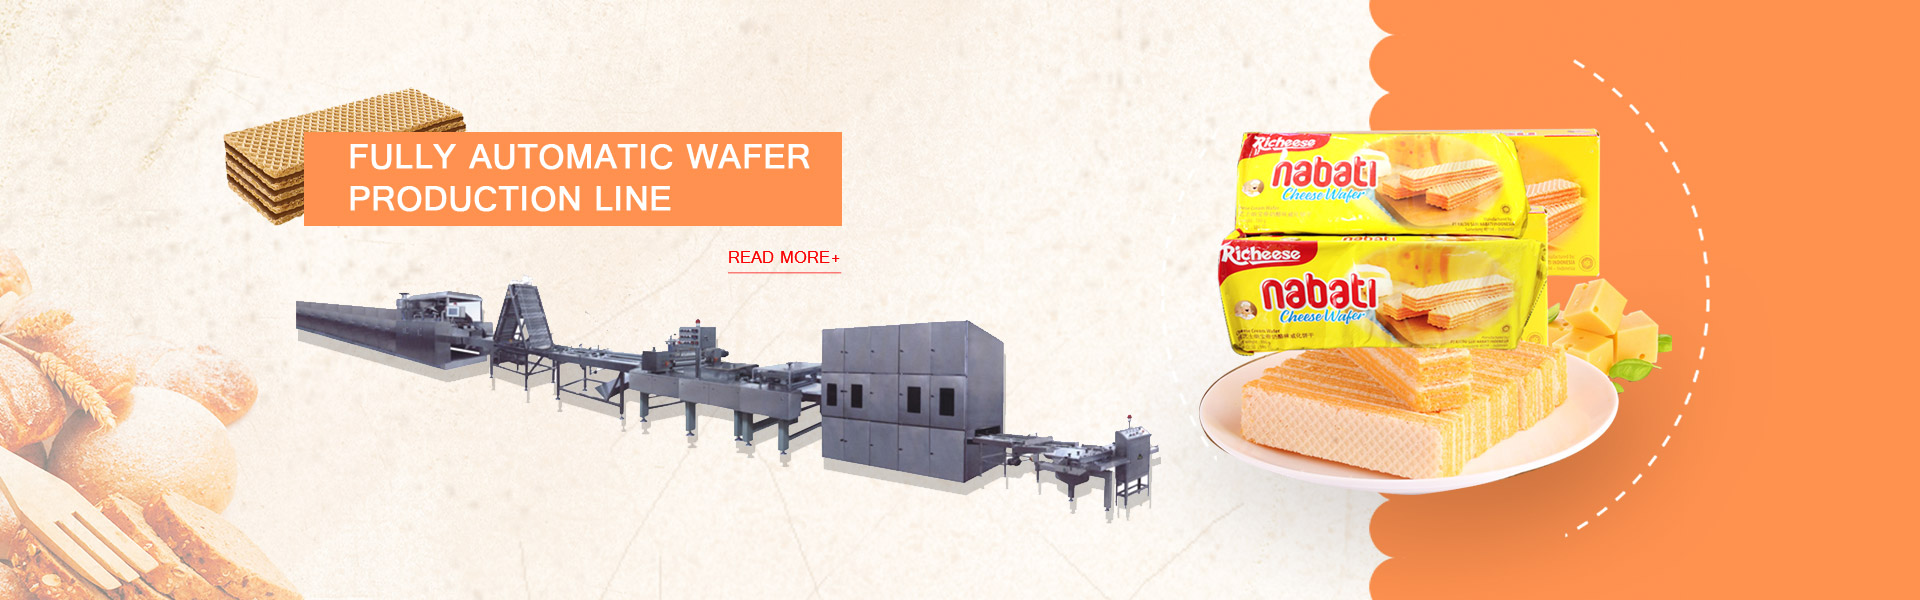 Fully Automatic Wafer Production Line